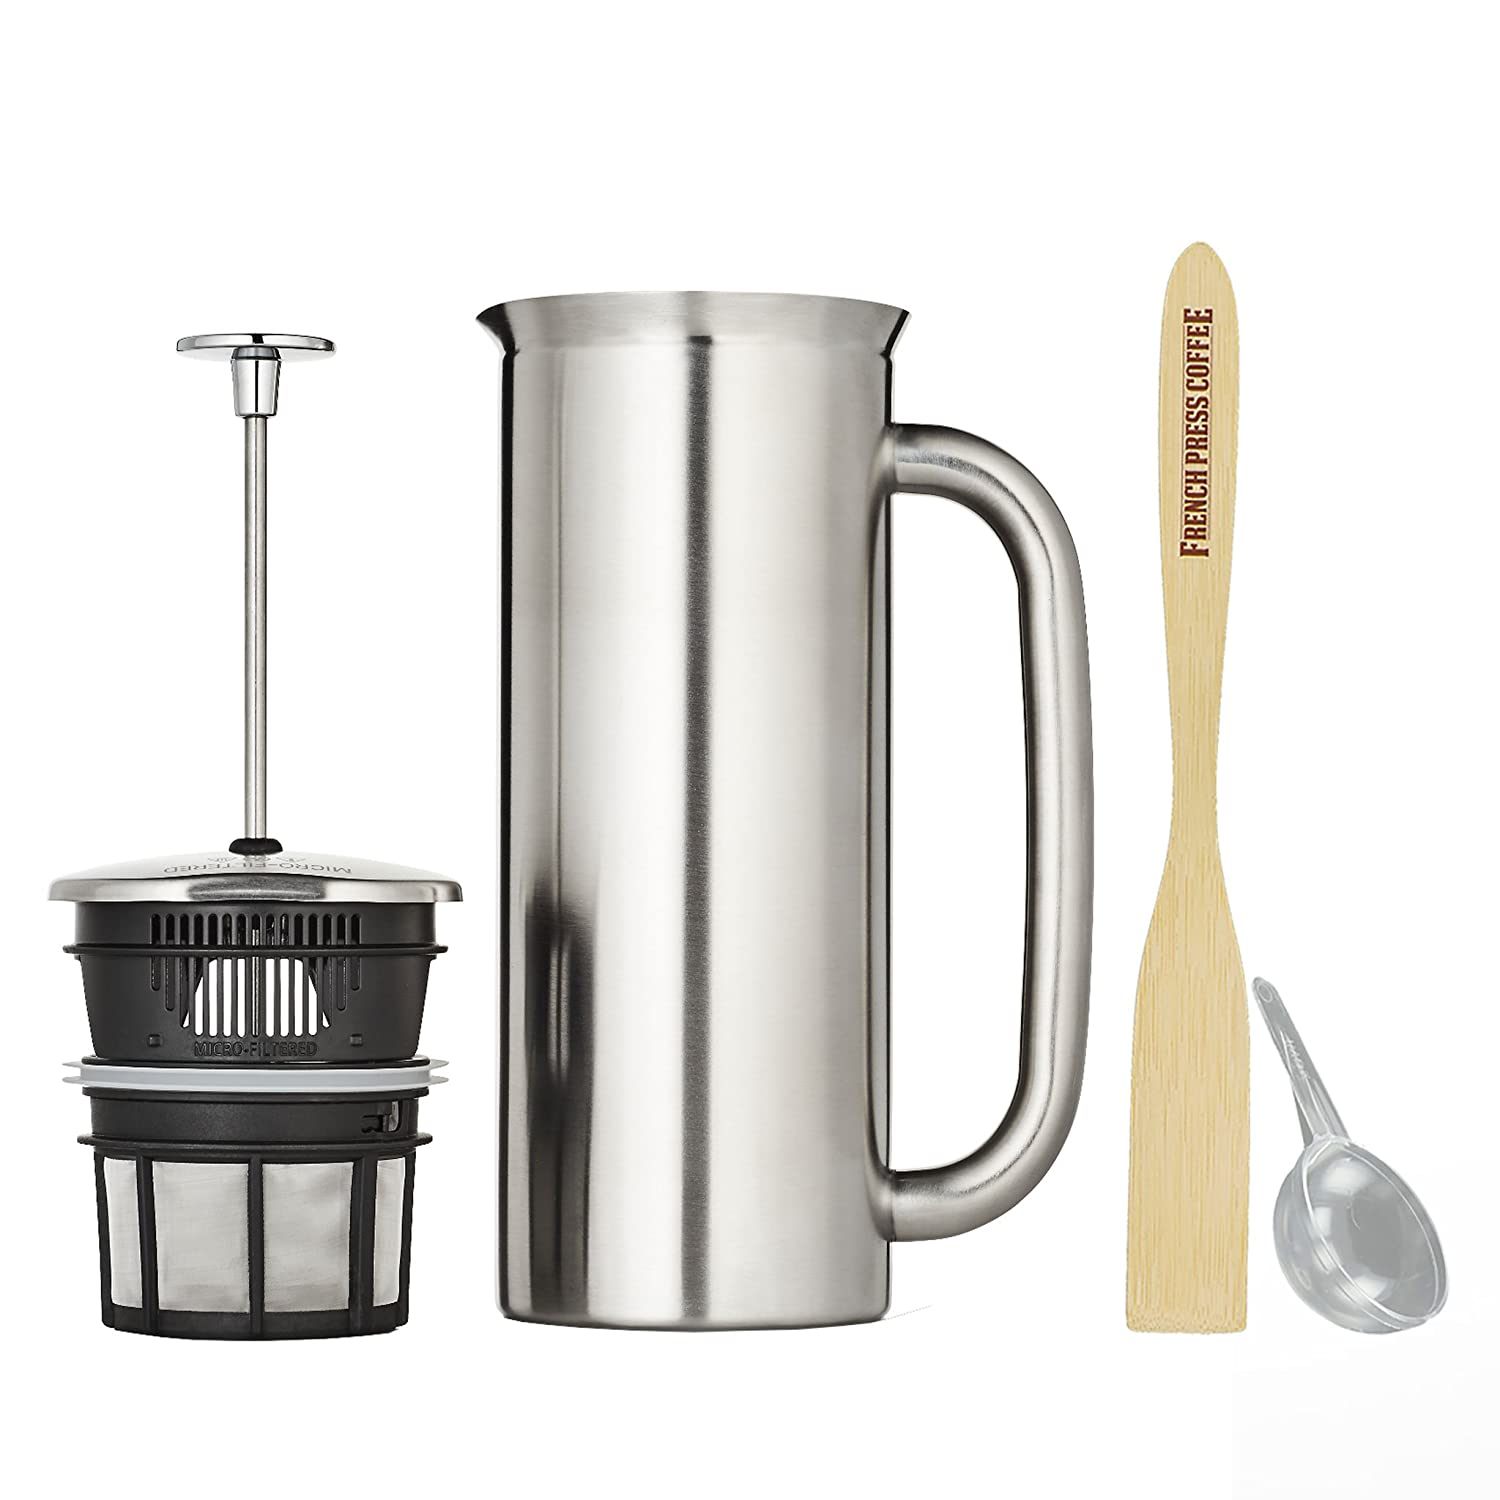 Espro Press P7, Stainless Steel French Press, Double Wall, Vacuum Insulated (3-4 cups, 18 ounce, Polished) Bundle with Handcrafted Bamboo Paddle, Coffee Scoop